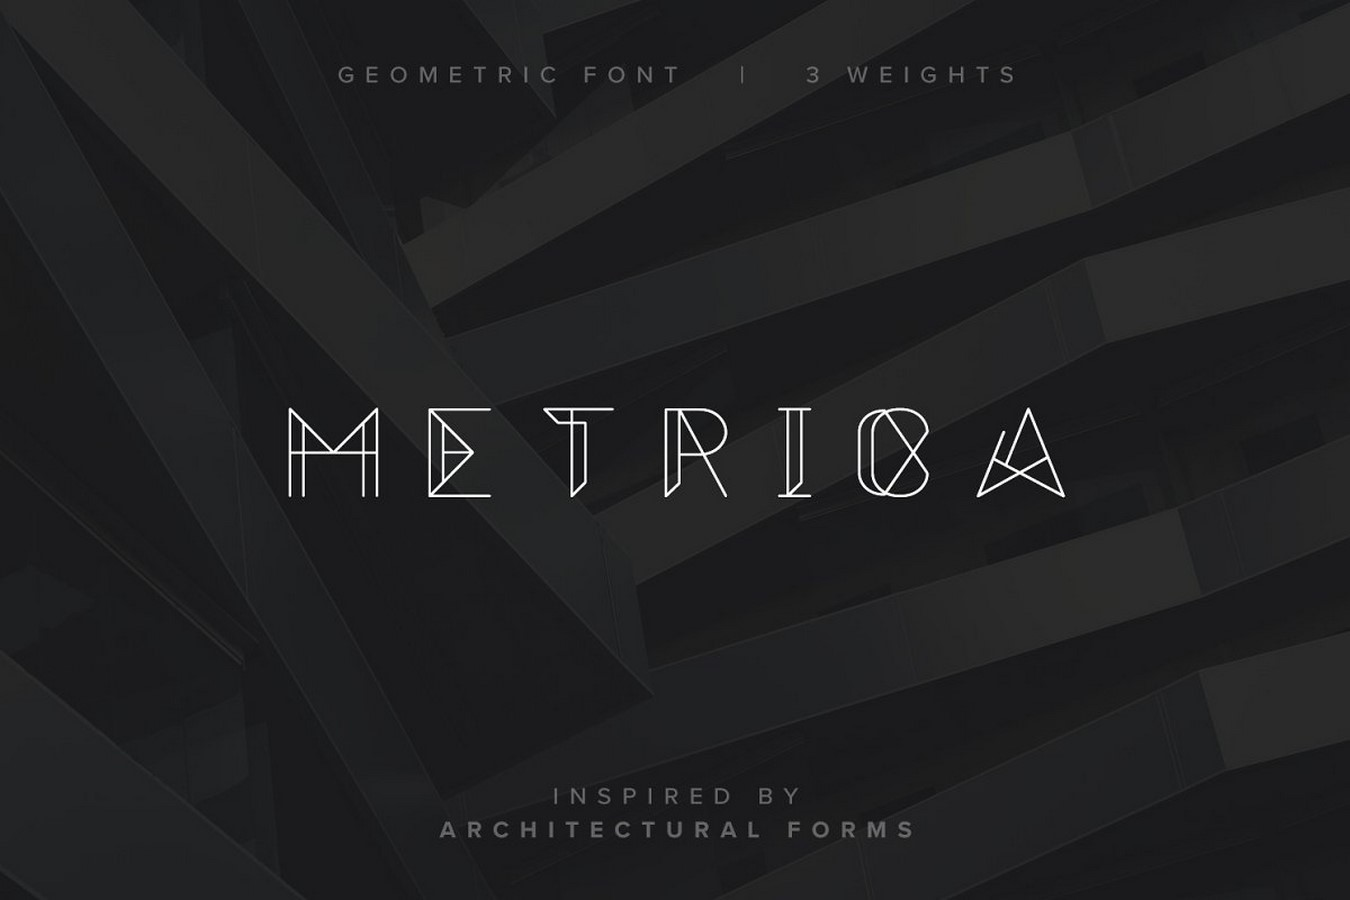 Fonts for Architects -Metrica Font - Sheet1